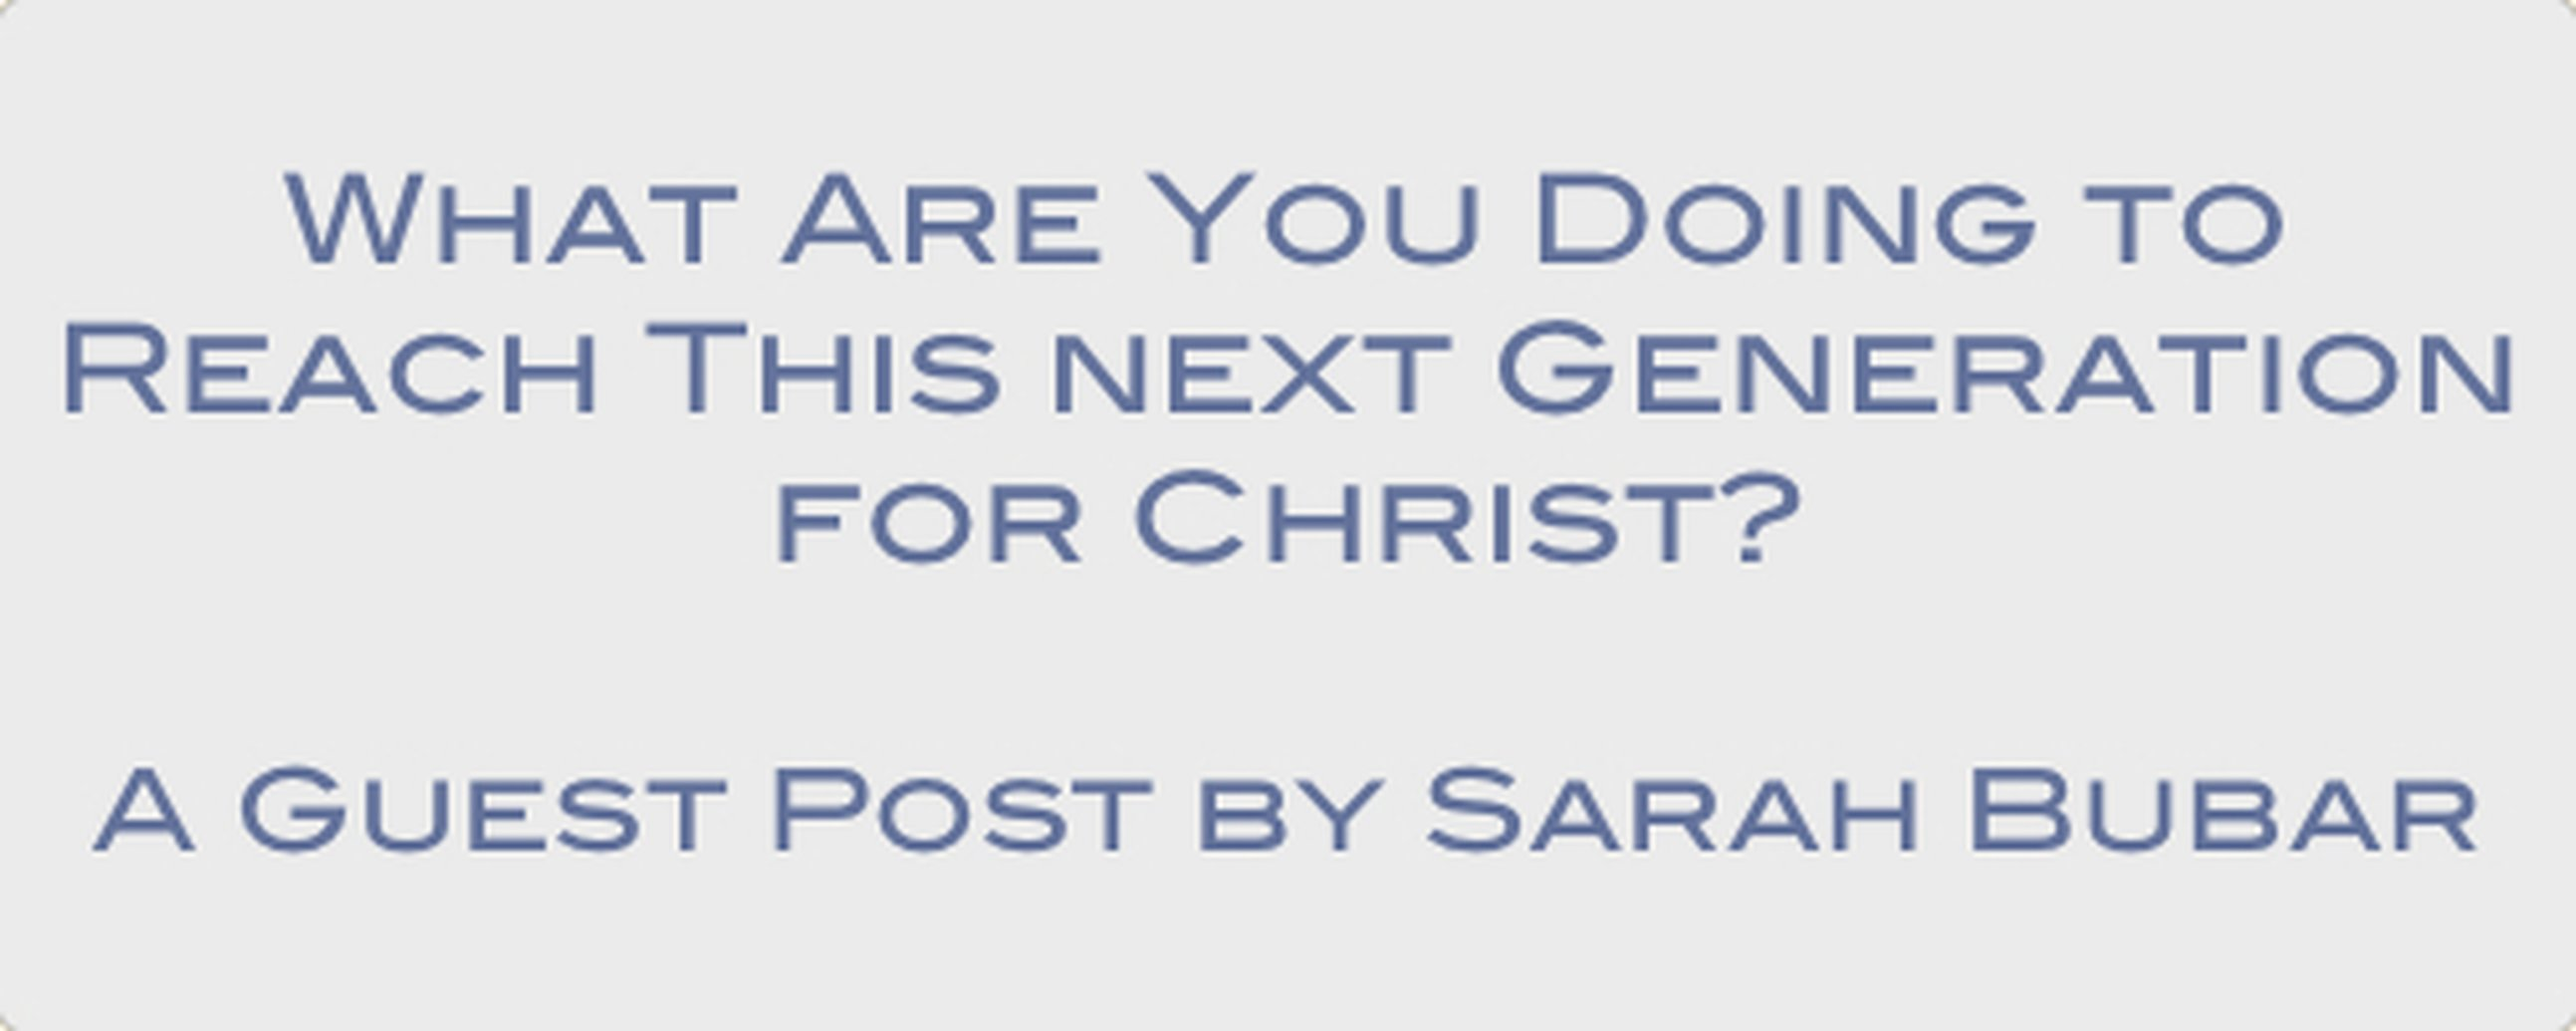 What are you doing to reach this next generation for Christ? - A Guest Post by Sarah Bubar